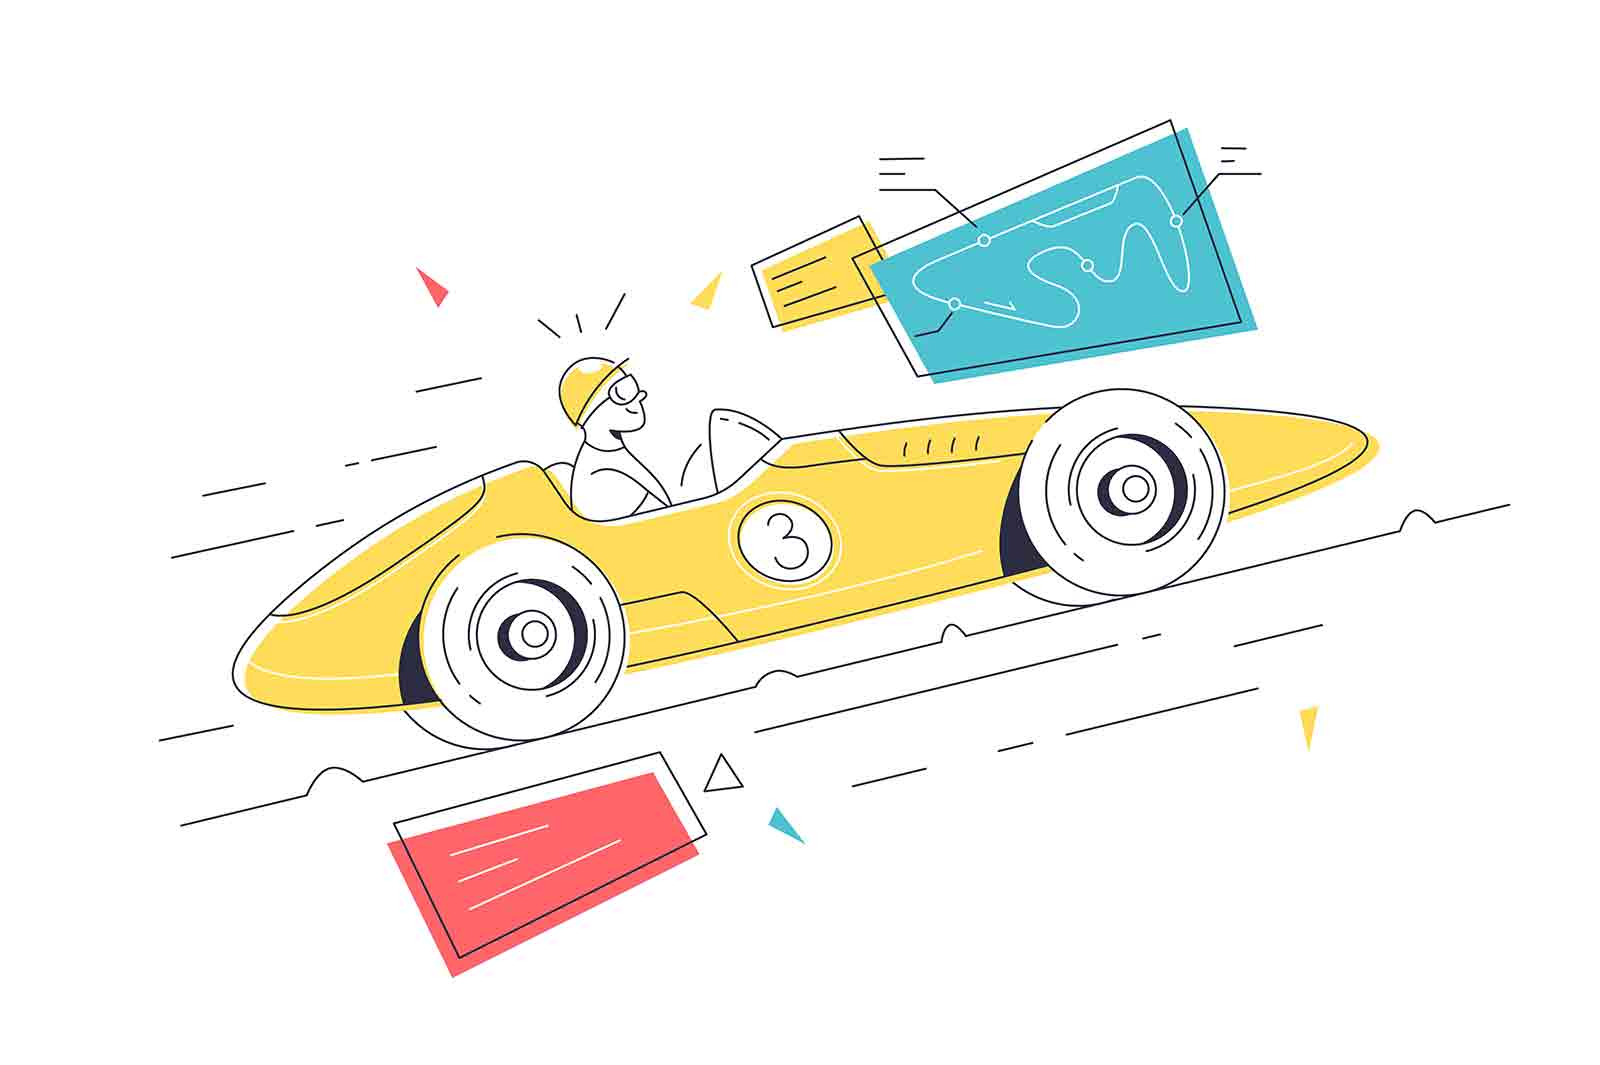 Luxury sport car for racing competition vector illustration. Supercar with high speed for race linear. Vehicle, modern automobile concept